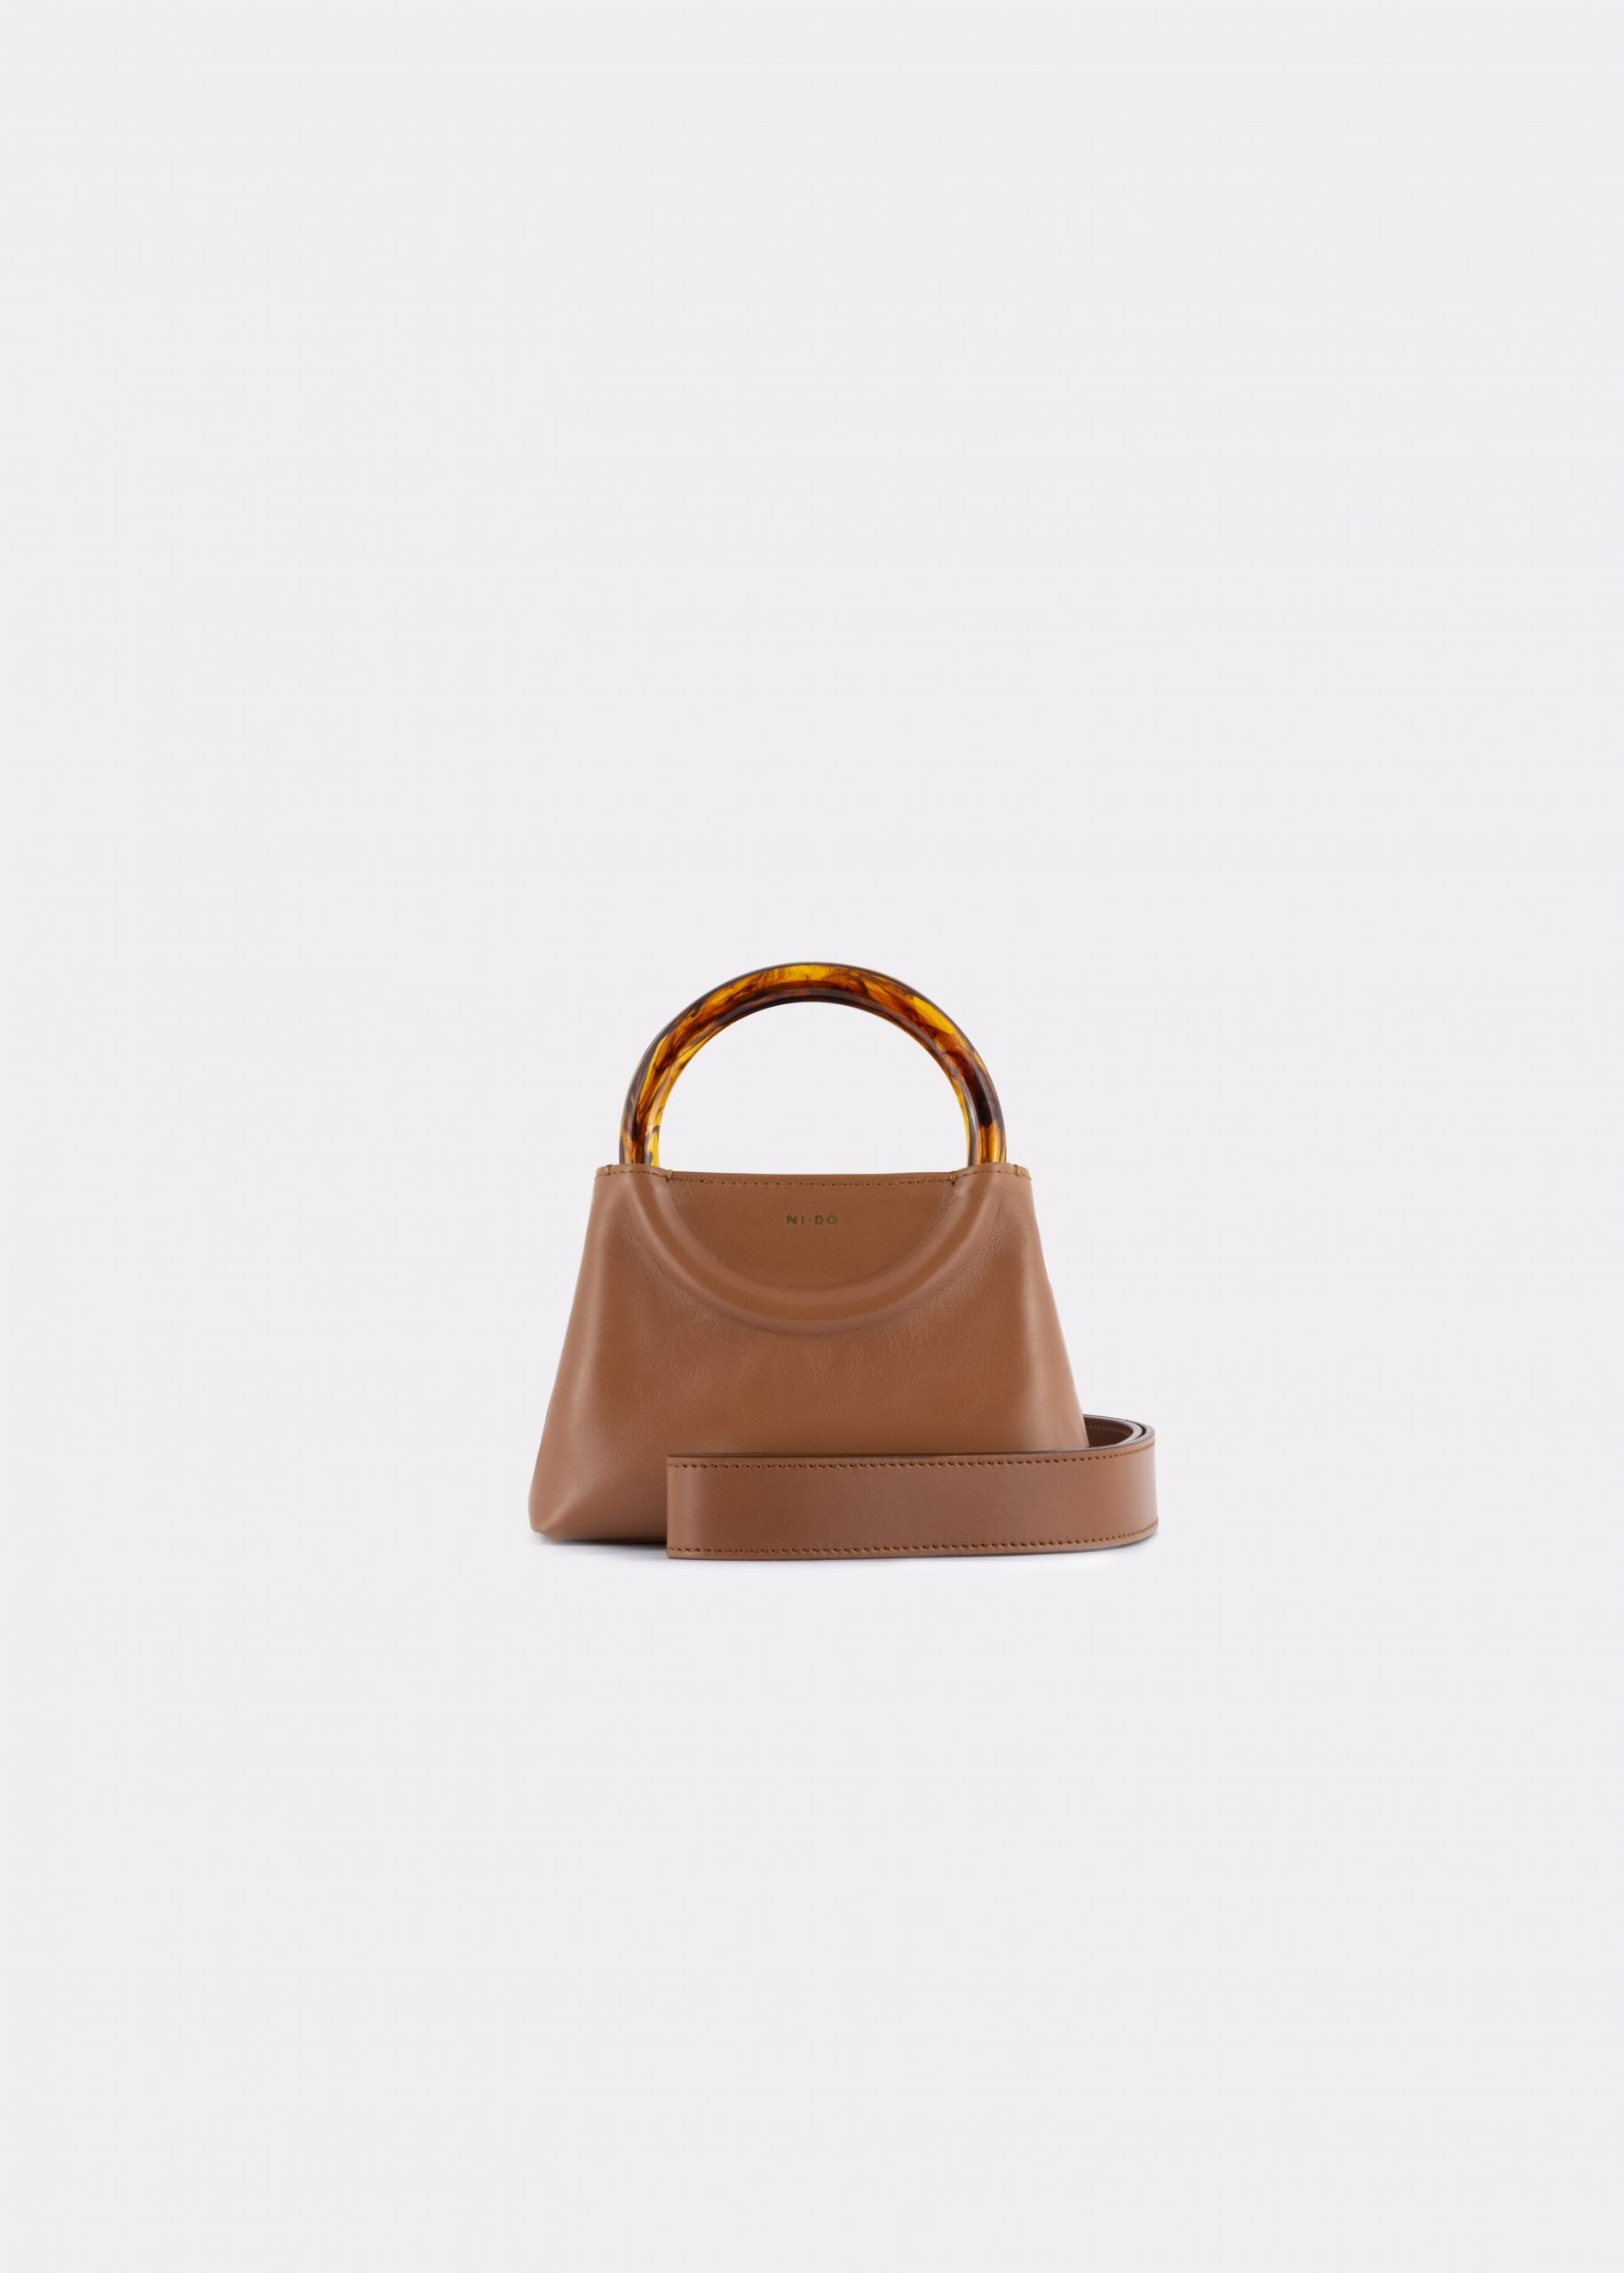 NIDO Bolla Micro bag biscuit leather Amber_shoulder strap view